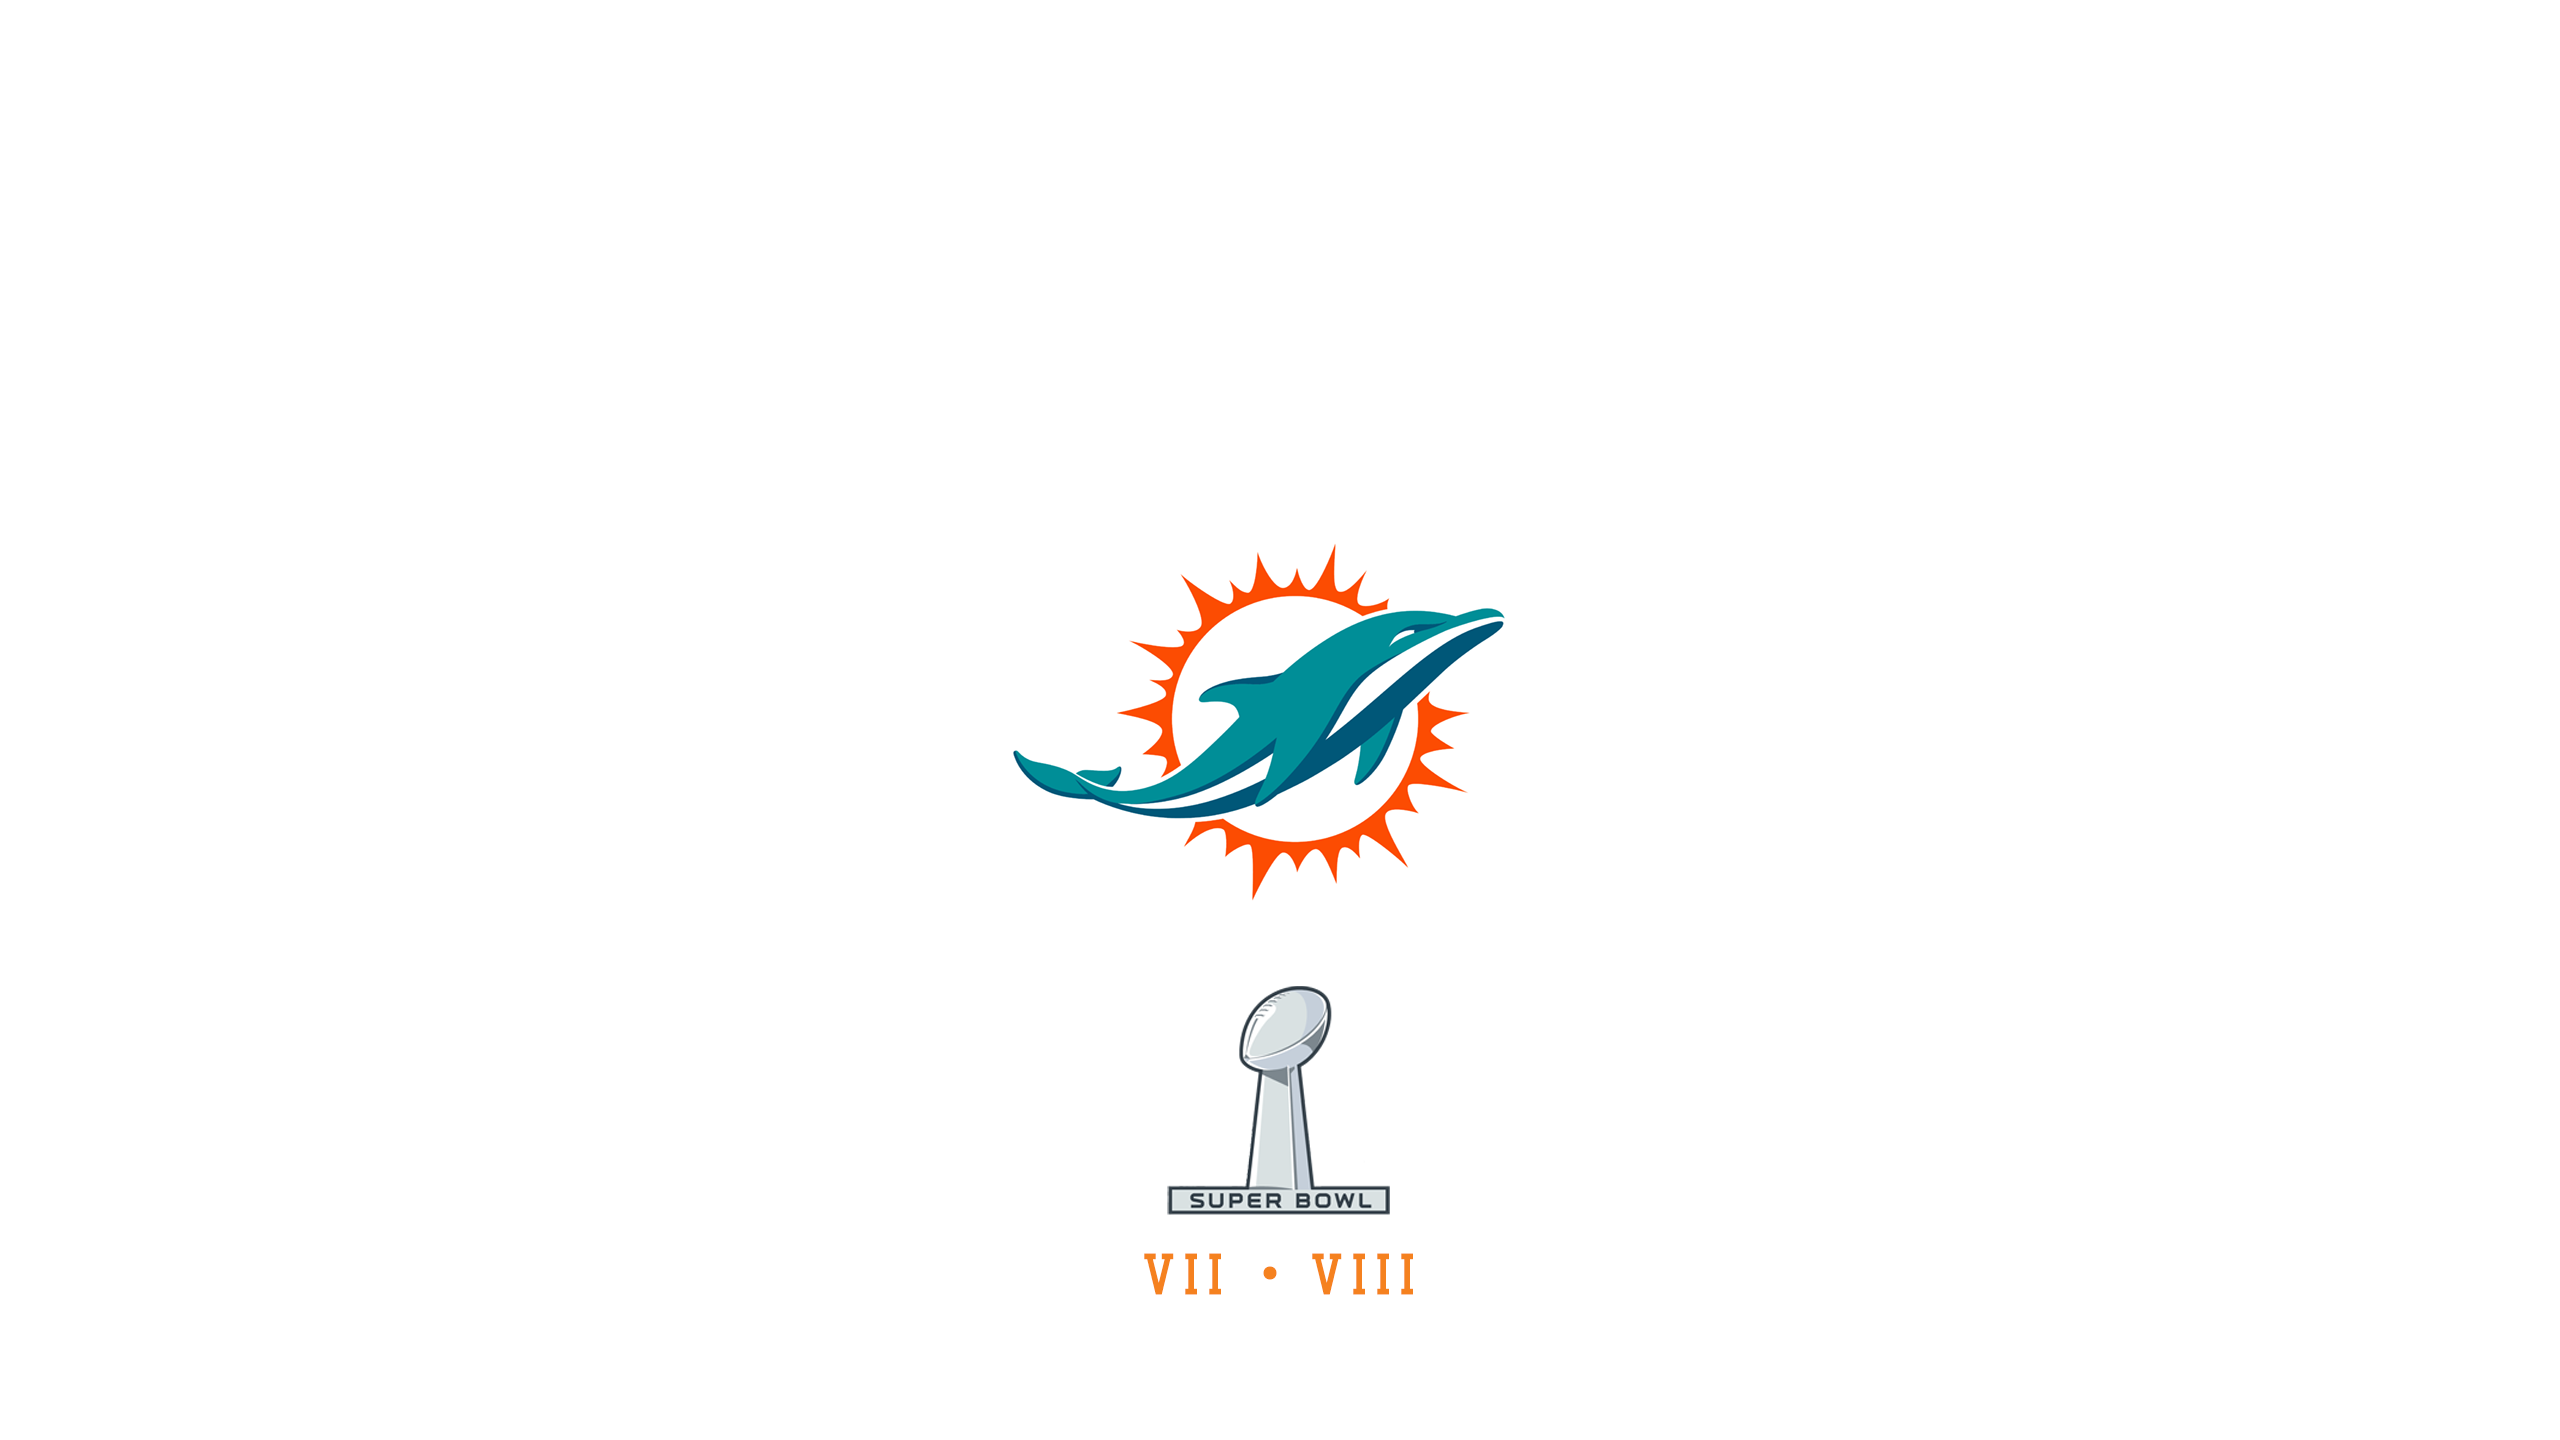 Miami Dolphins - SB Champs